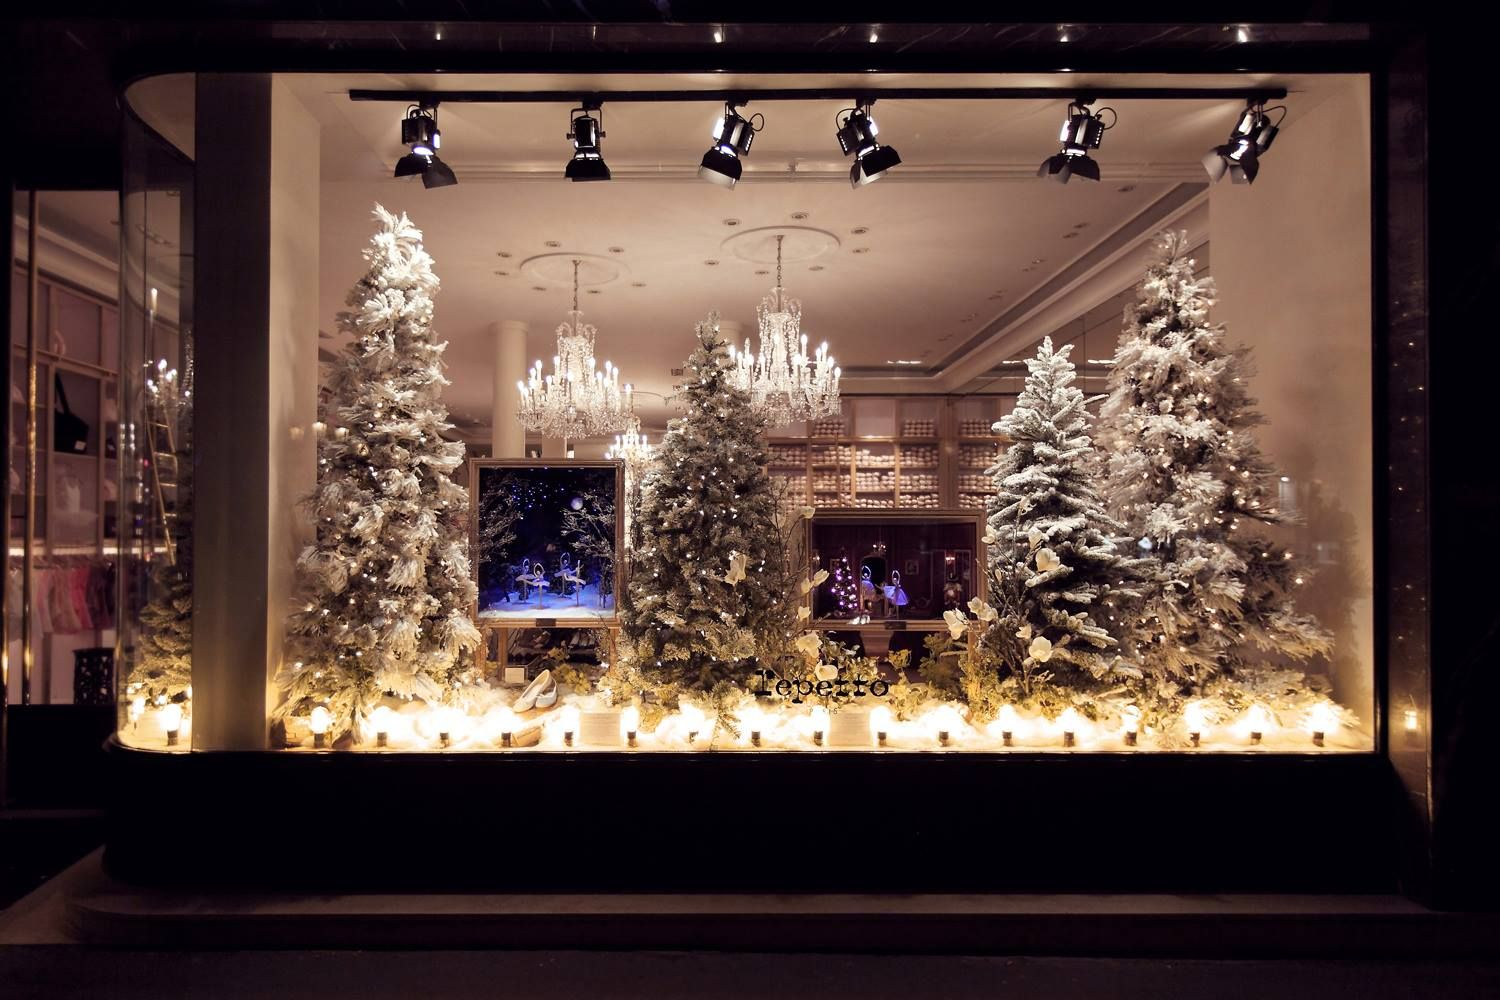 Natale da repetto creative window displays pinterest - Les plus belles decorations de noel ...